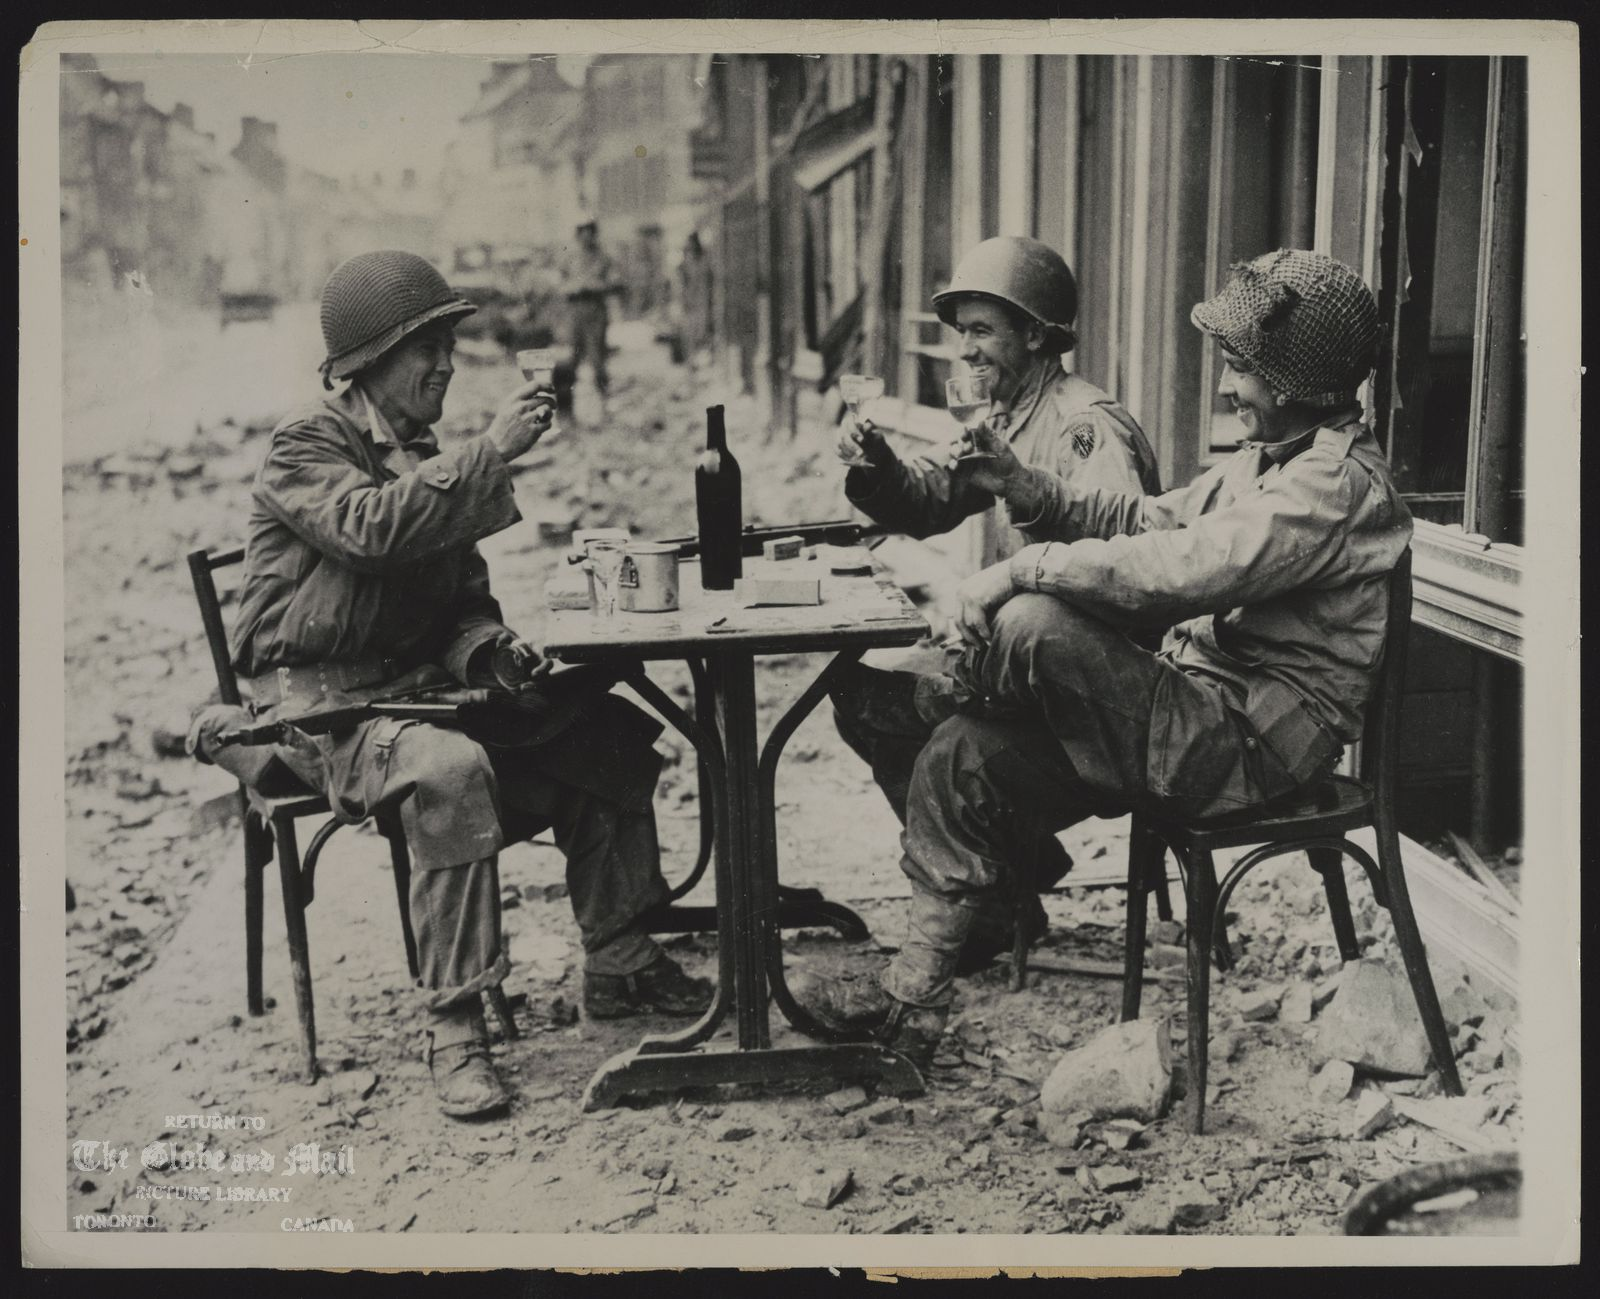 The notes transcribed from the back of this photograph are as follows: WORLD WAR II France TO VICTORY -- A YANK VERSION OF A SIDEWALK CAFE, IN FALLEN LA HAVE DU PUITS, FRANCE, AS ROBERT McCURDY (LEFT) NEWARK, N.J., SGT. HAROLD SMITH, BRUSH CREEK, TENN. (CENTRE), AND SGT RICHARD BENNETT, WILKES BARRE, PA, RAISE THEIR GLASSES IN A TOAST. ASSOCIATED PRESS PHOTO 7-15-44 [1944]